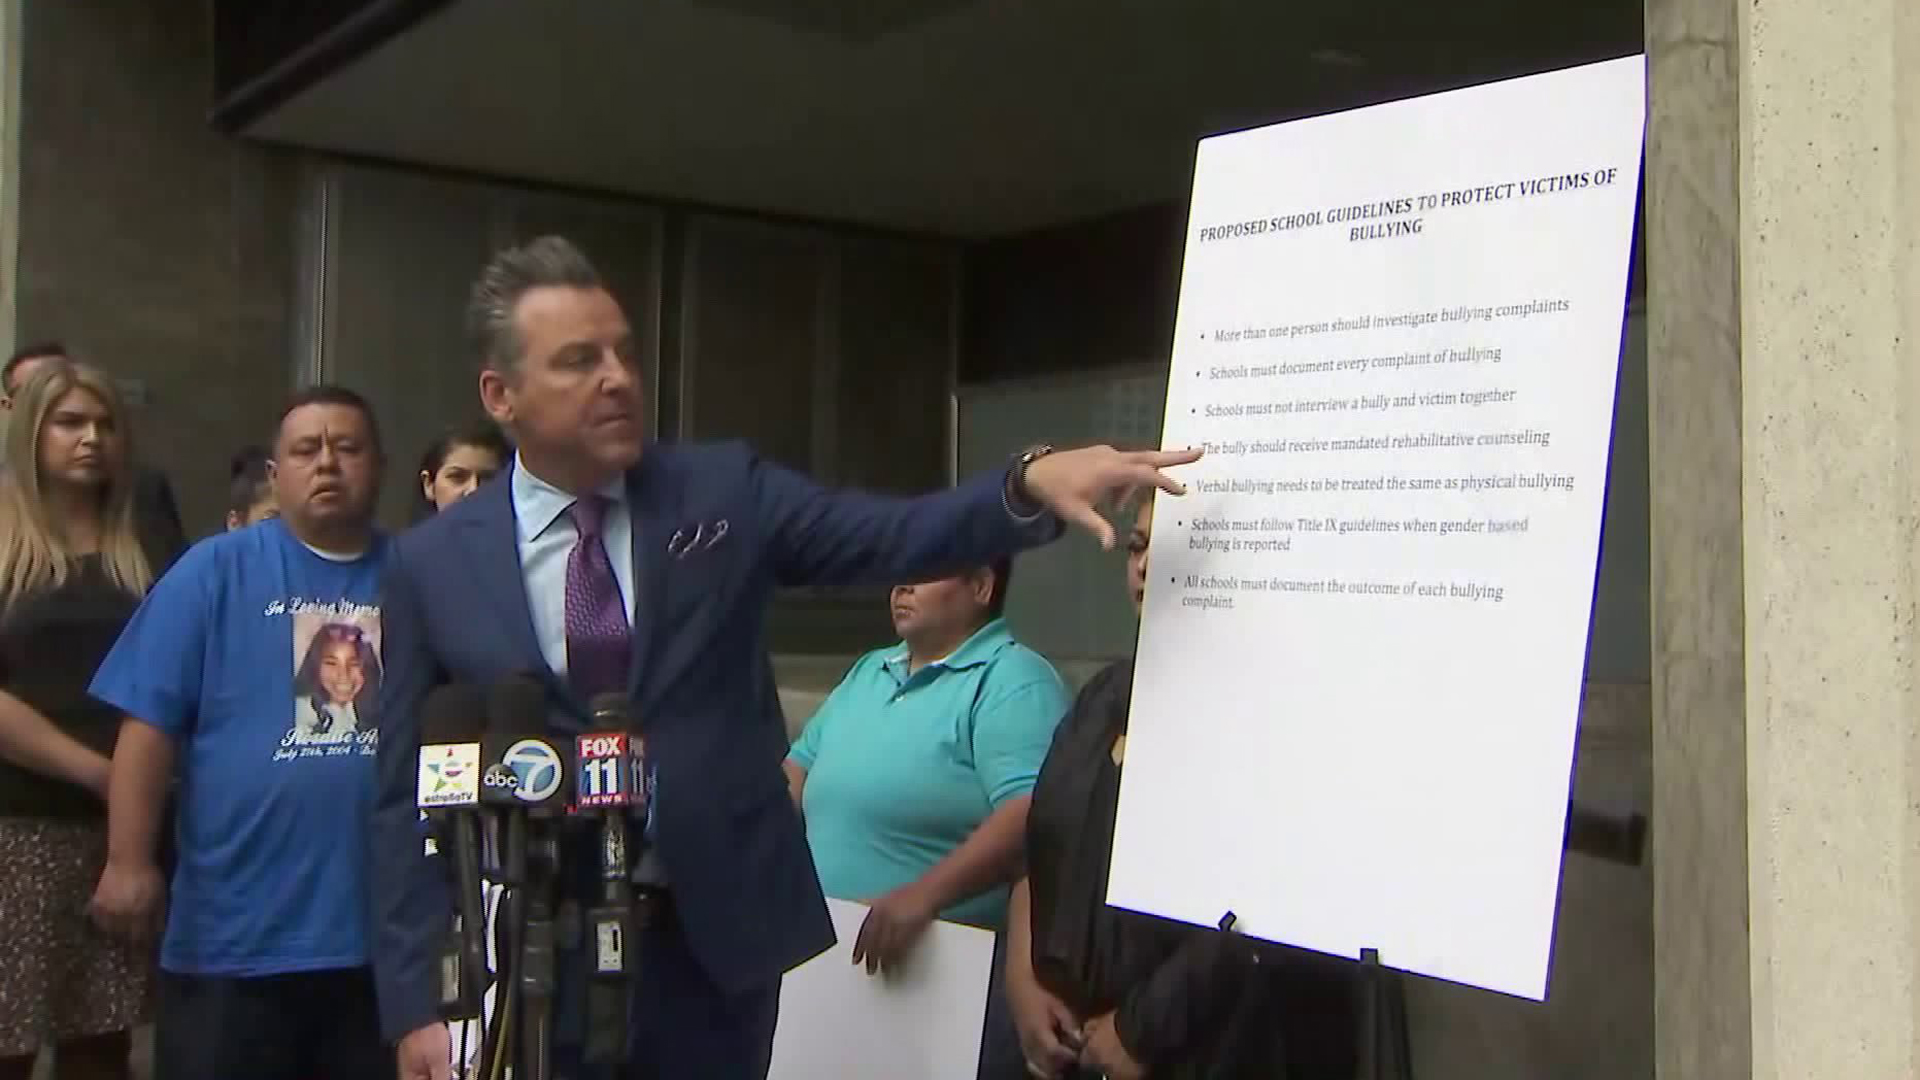 Brian Claypool speaks alongside families he is representing in bullying cases against school districts on May 15, 2018. (Credit: KTLA)